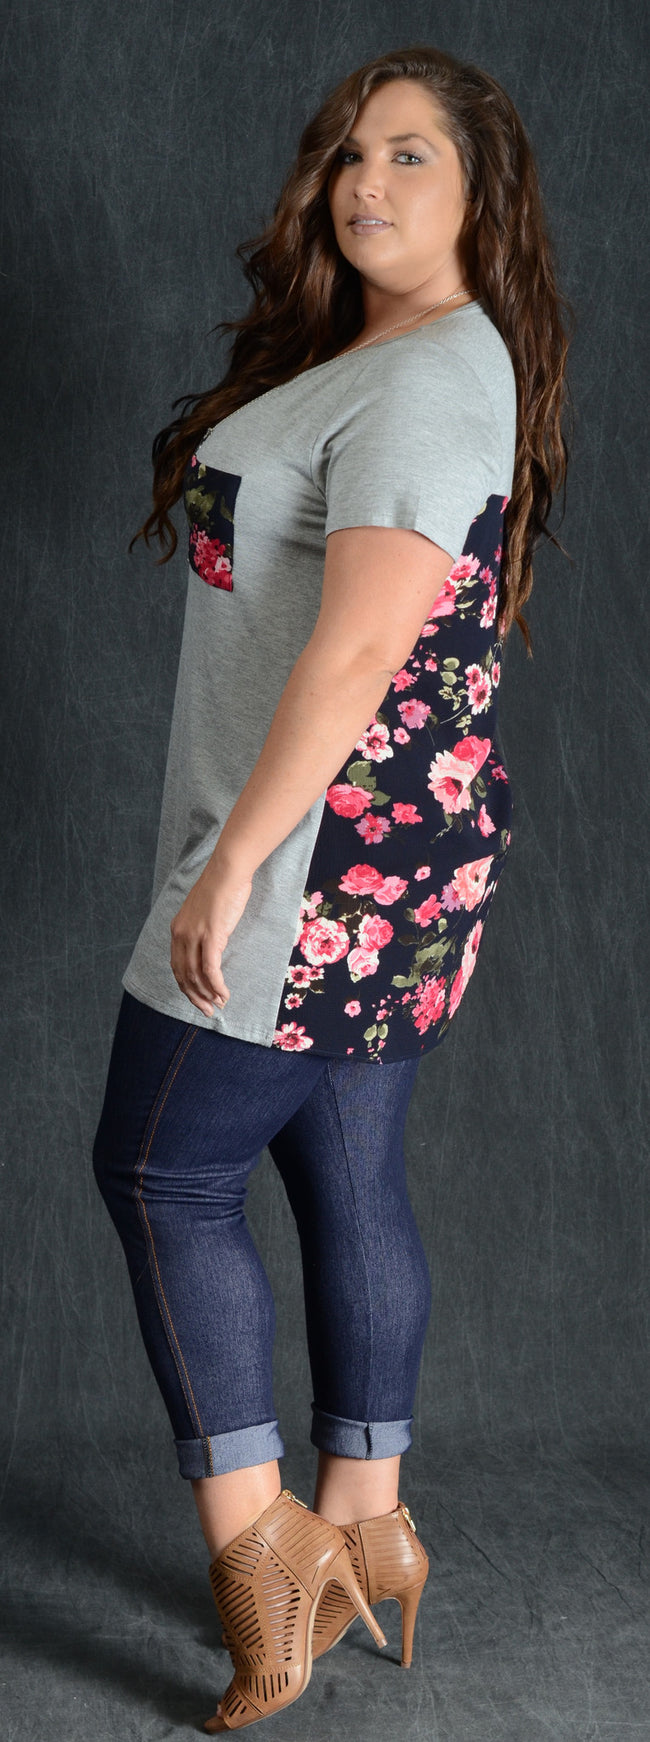 Grey Floral Back Pocket Tee - www.mycurvystore.com - Curvy Boutique